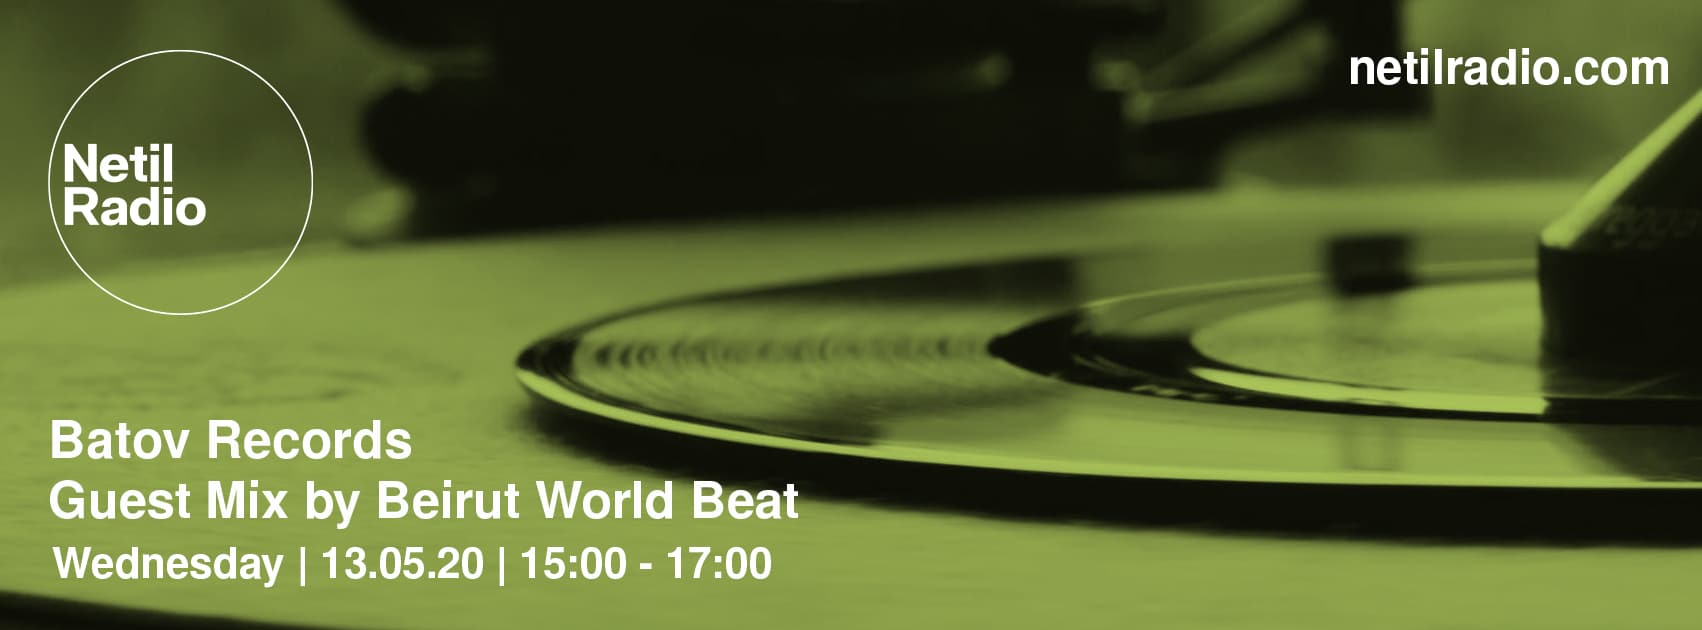 Beirut World Beat on Netil Radio